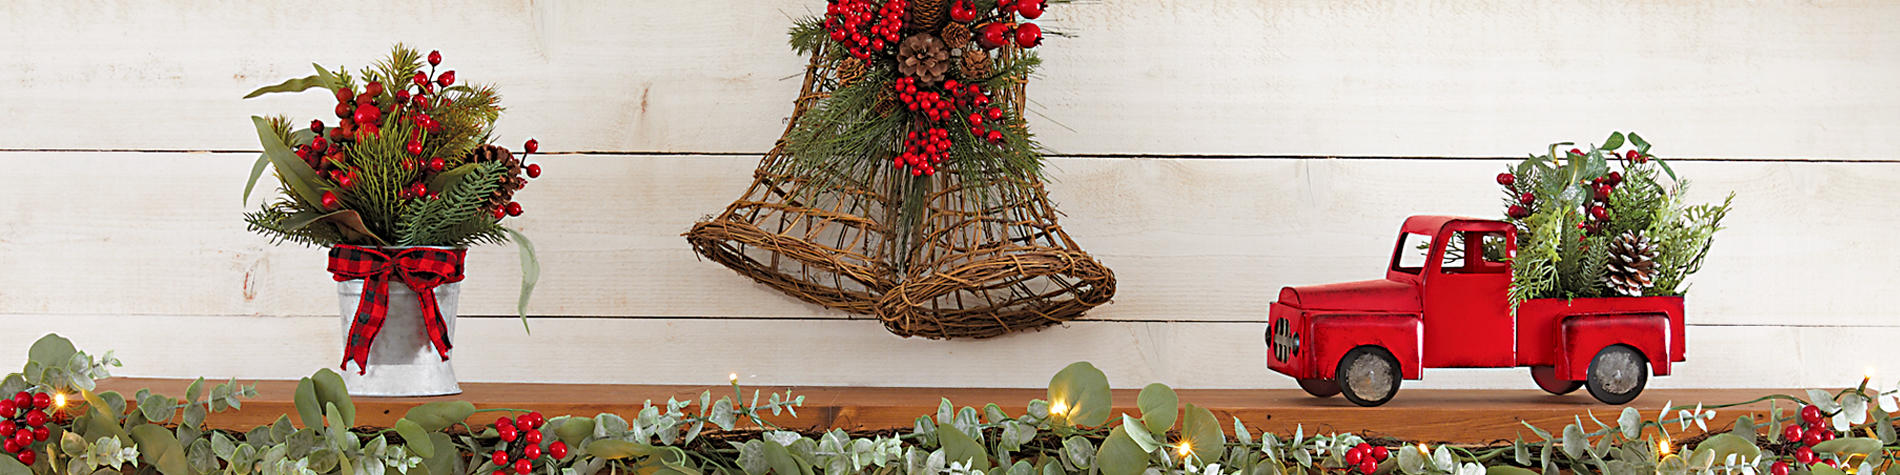 Festive Holiday decor for your Christmas decorating needs